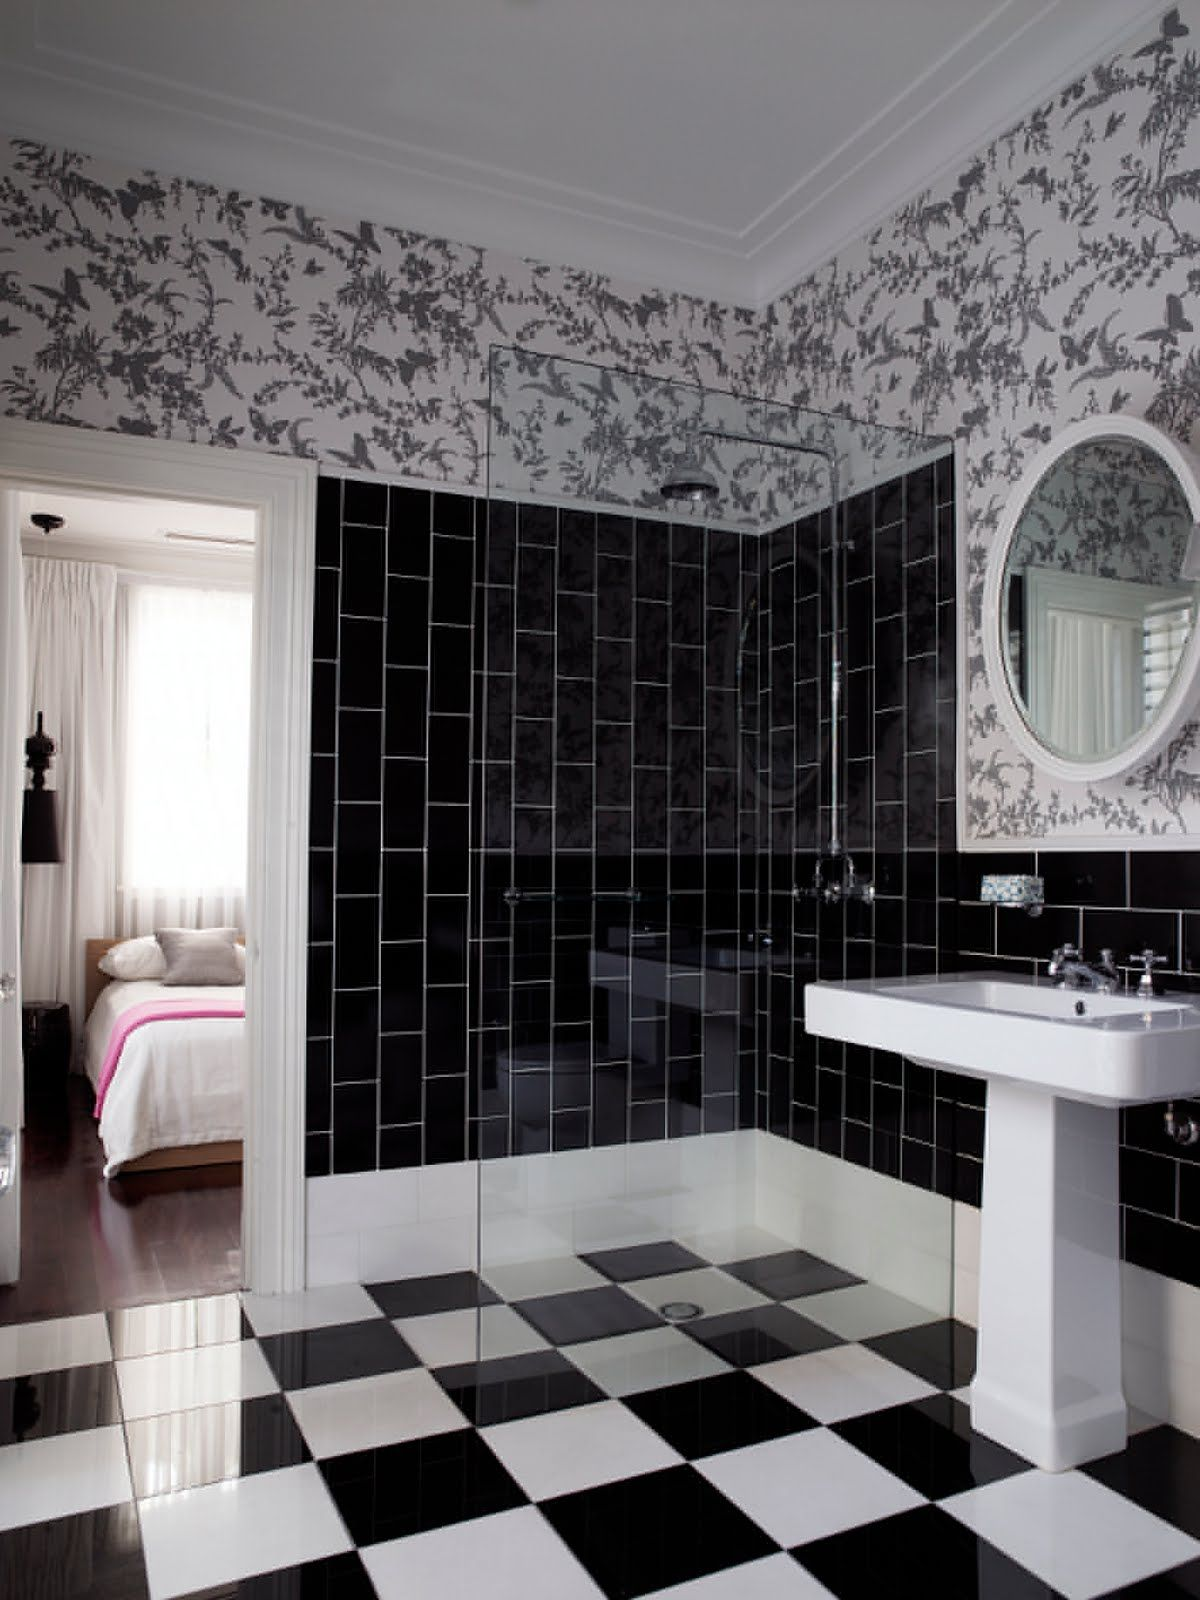 30 cool pictures and ideas of digital wall tiles for ...